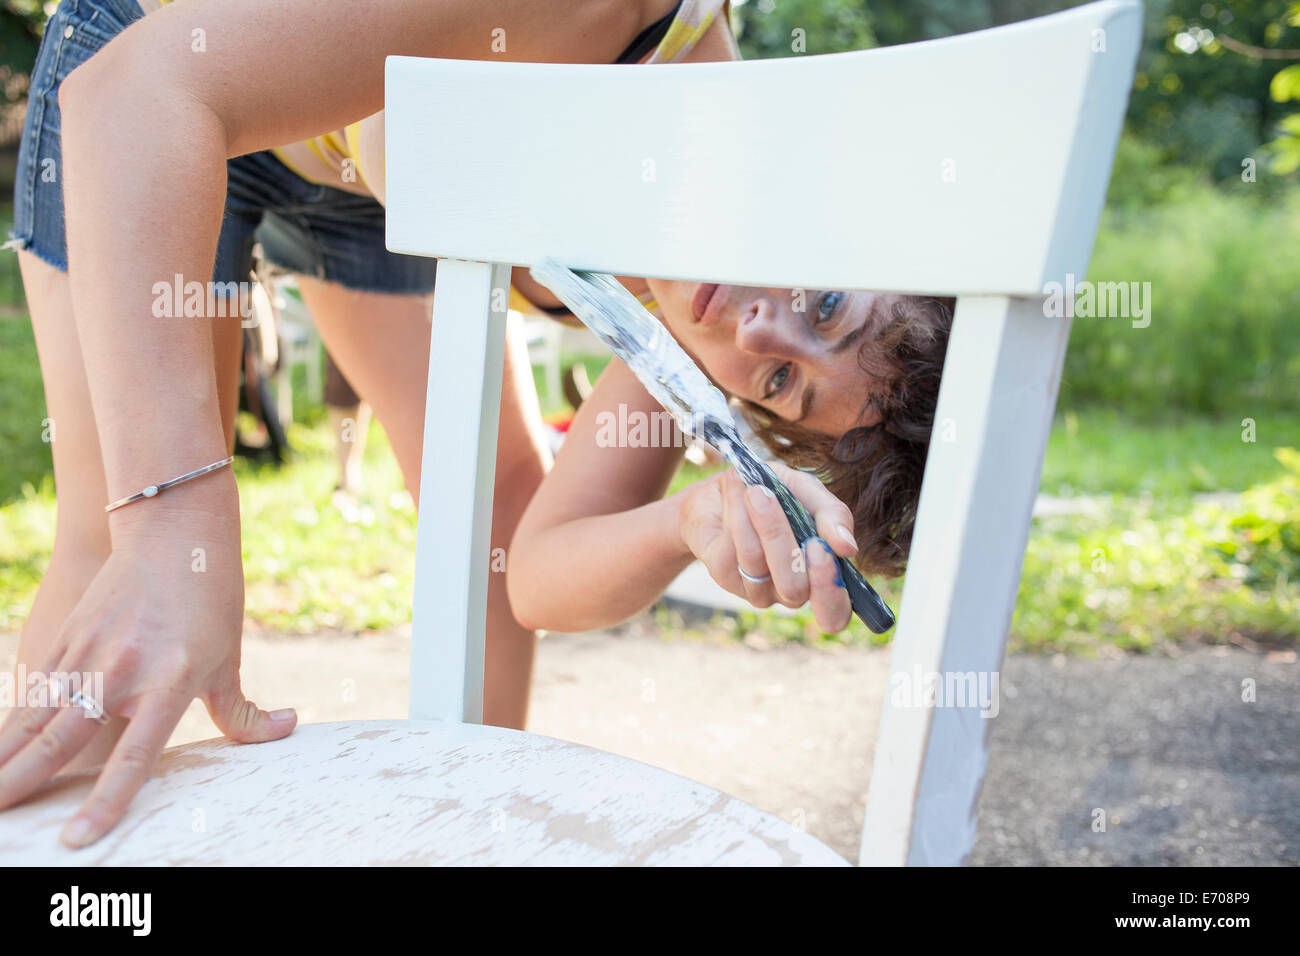 Mid adult woman bending forward to paint and restore chair in garden - Stock Image